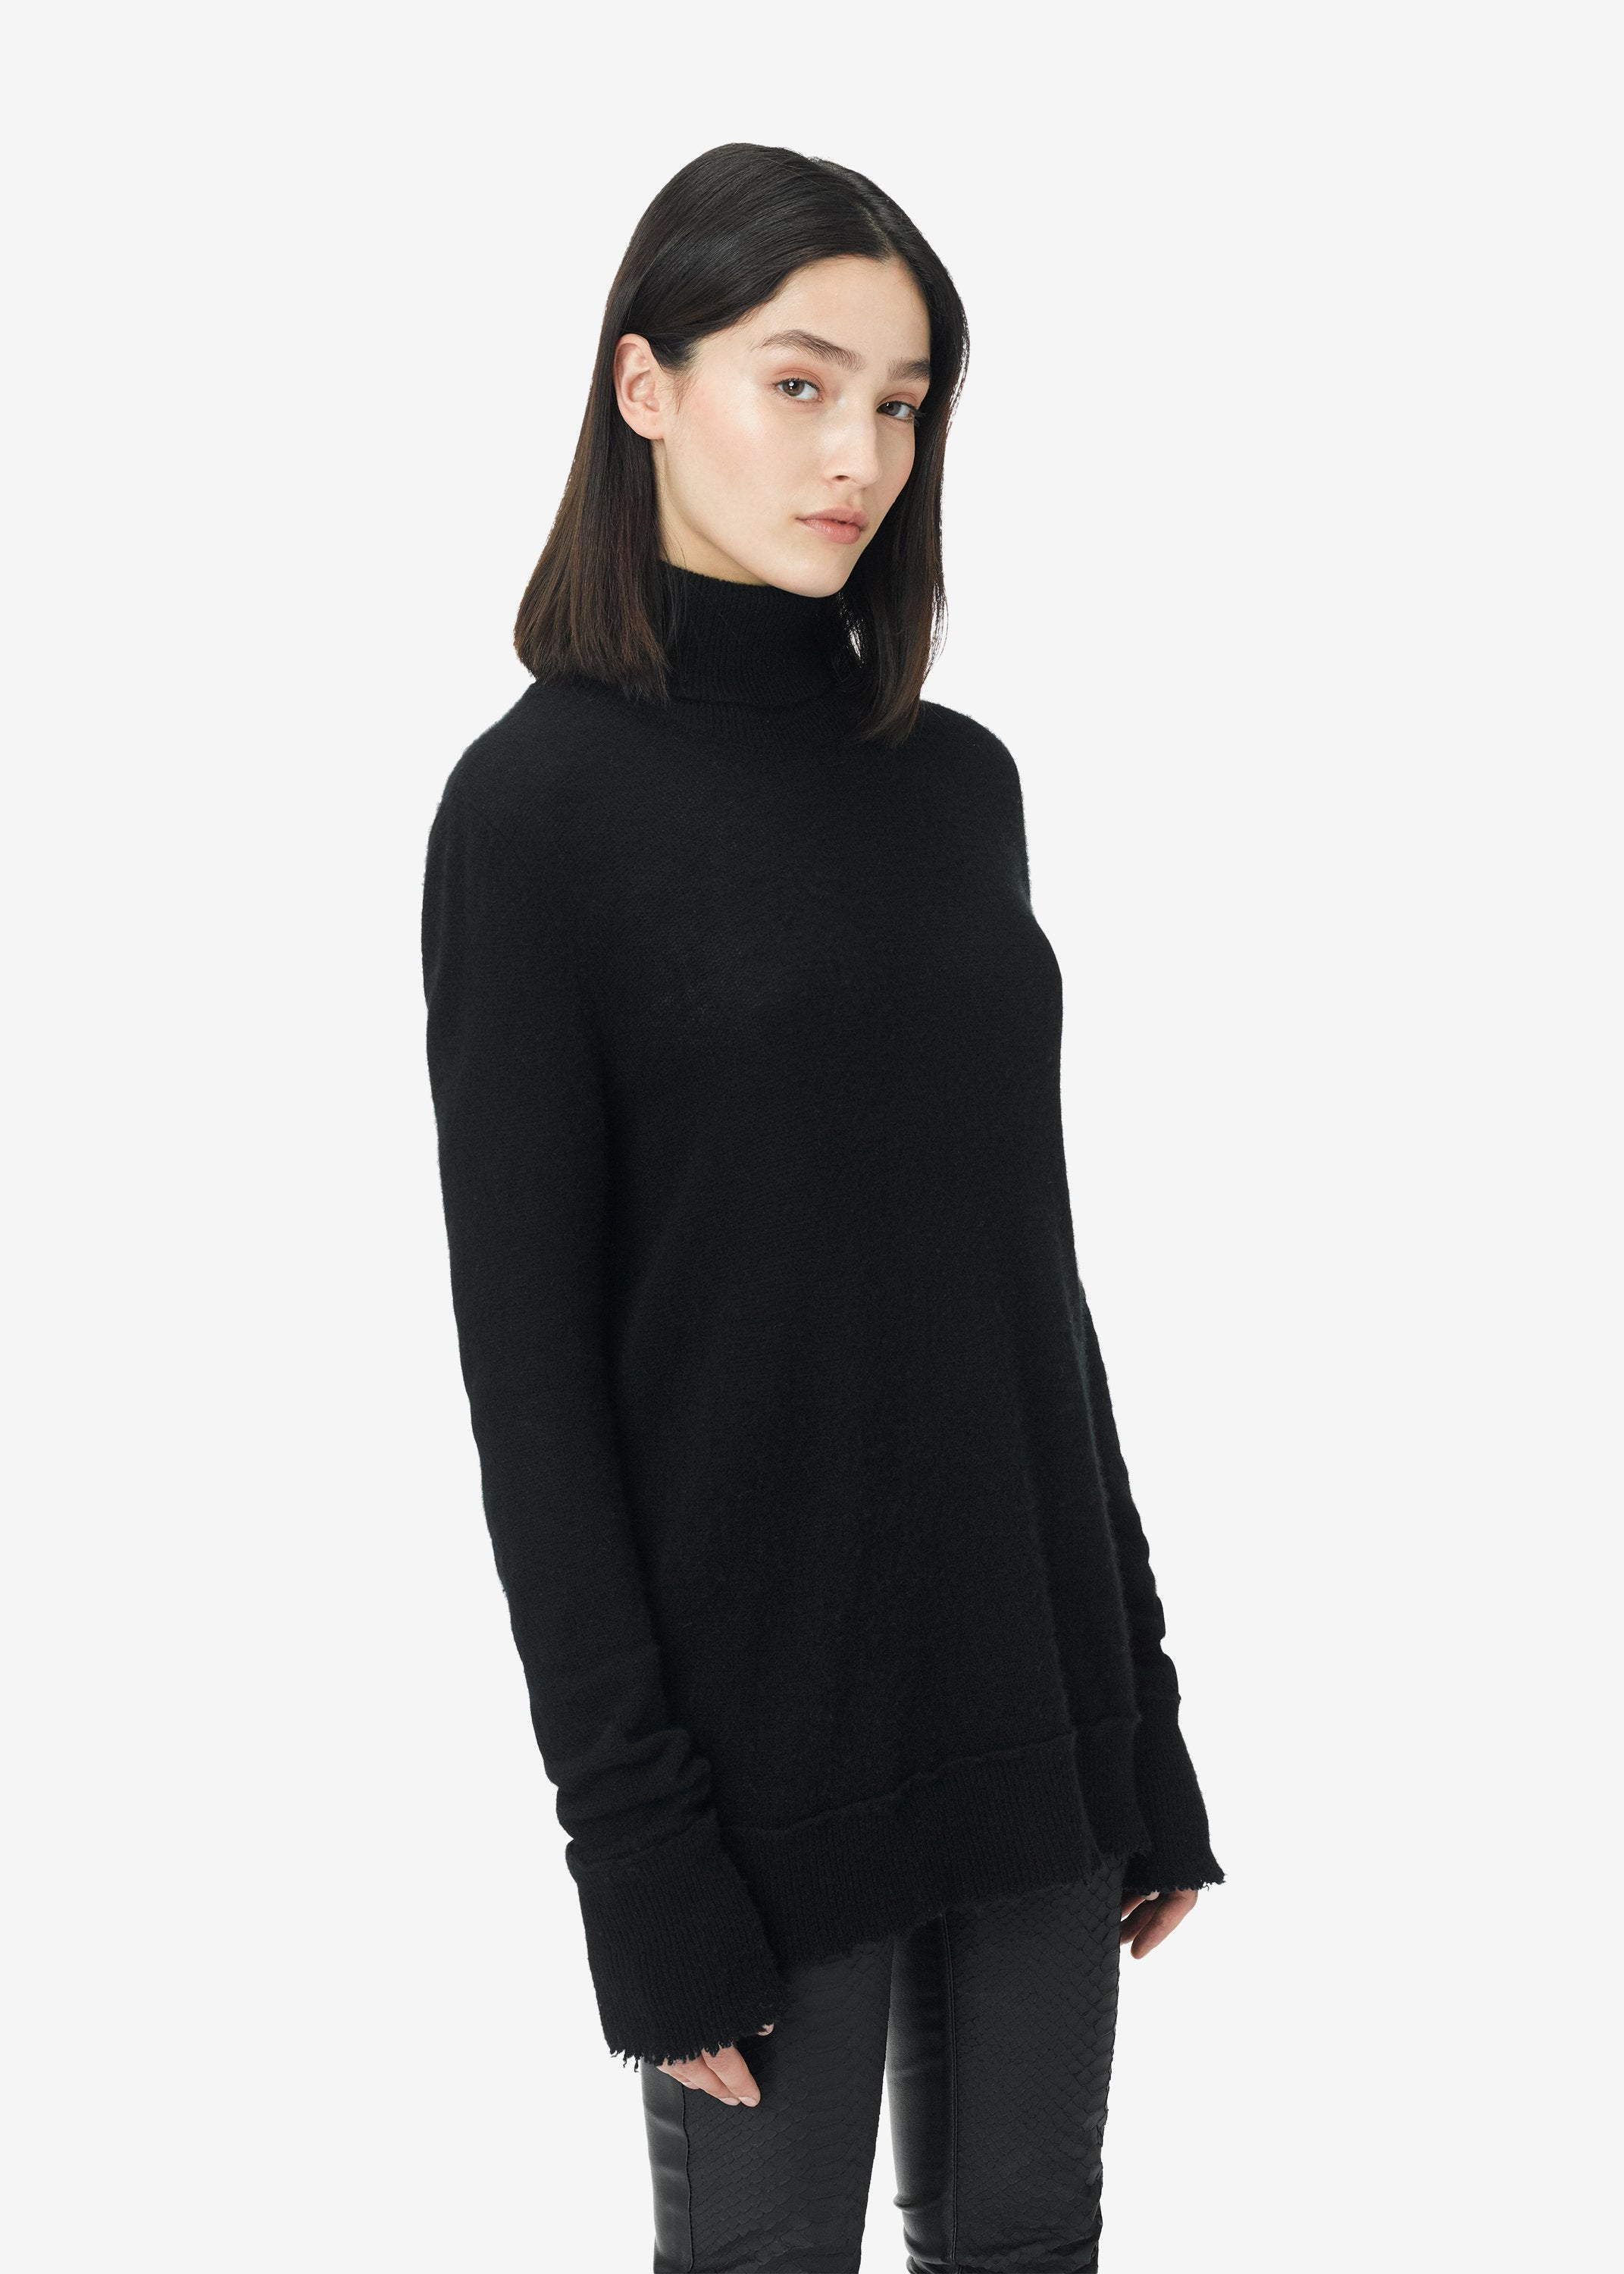 turtleneck-knit-black-image-4